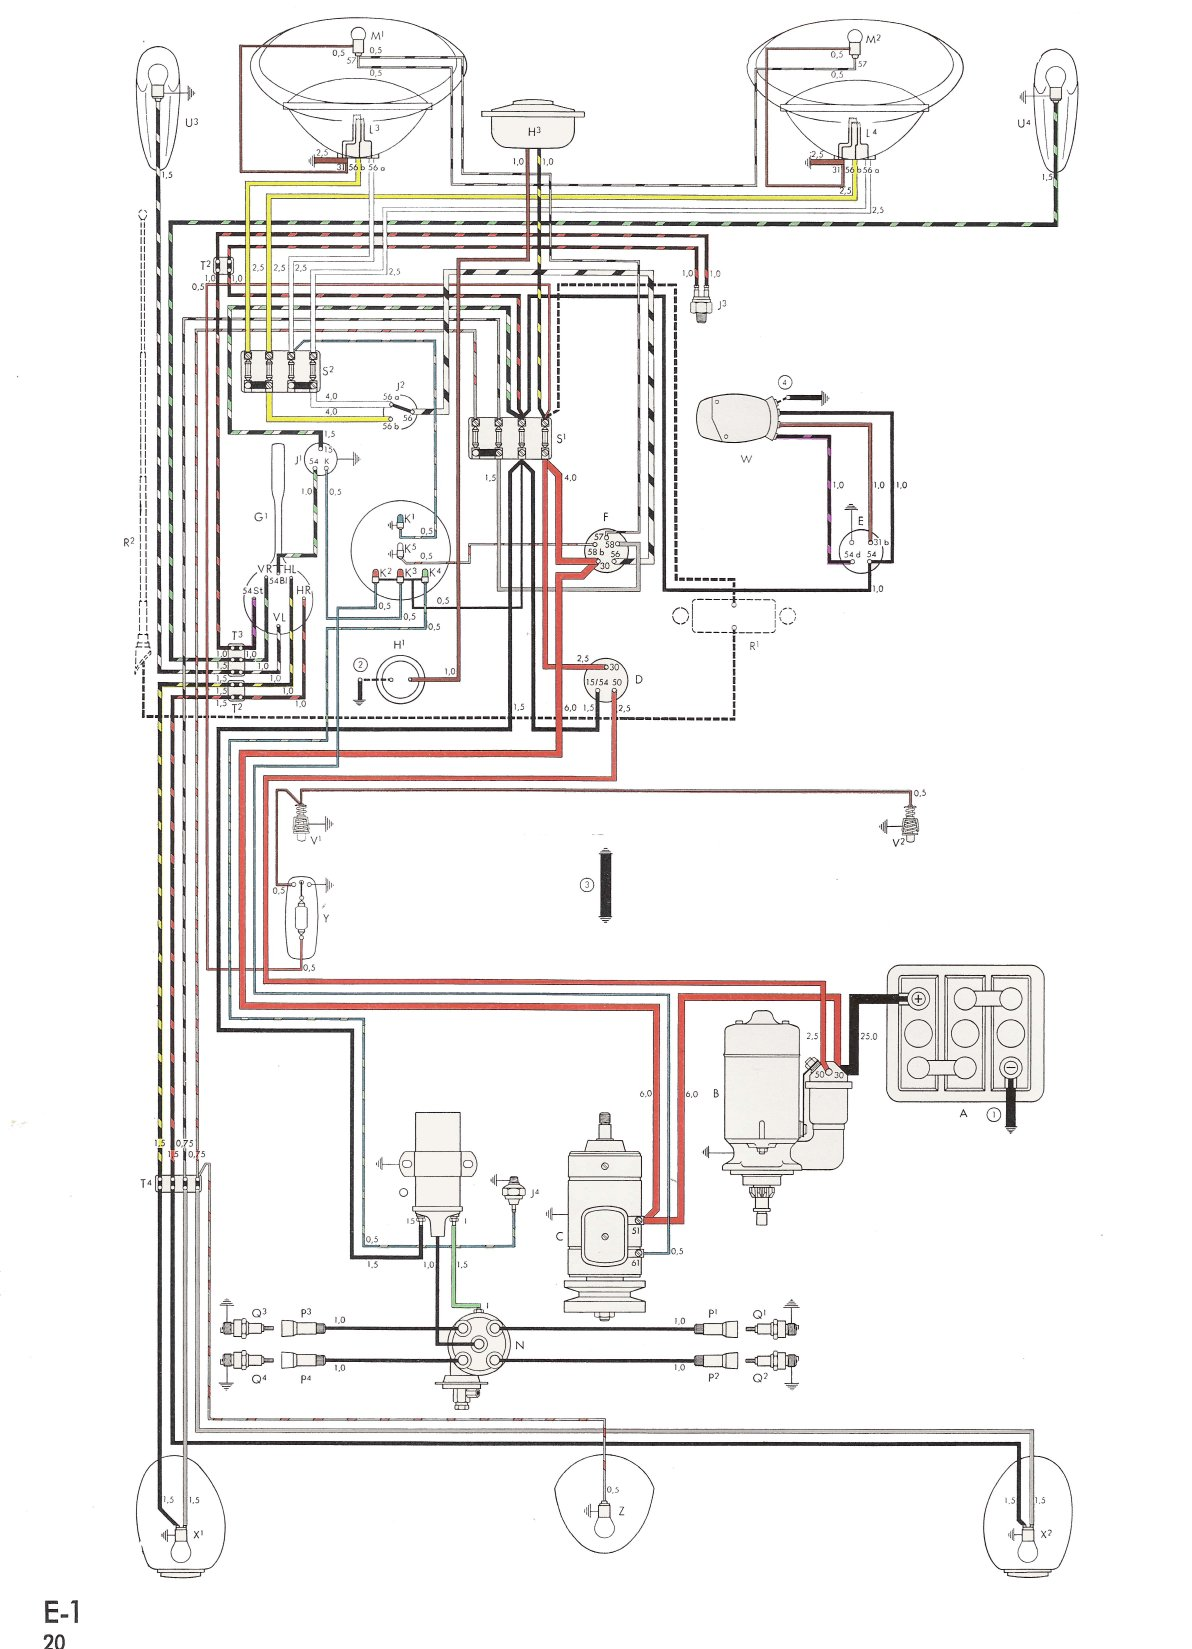 bug60 thesamba com type 1 wiring diagrams 1974 vw beetle wiring diagram at virtualis.co